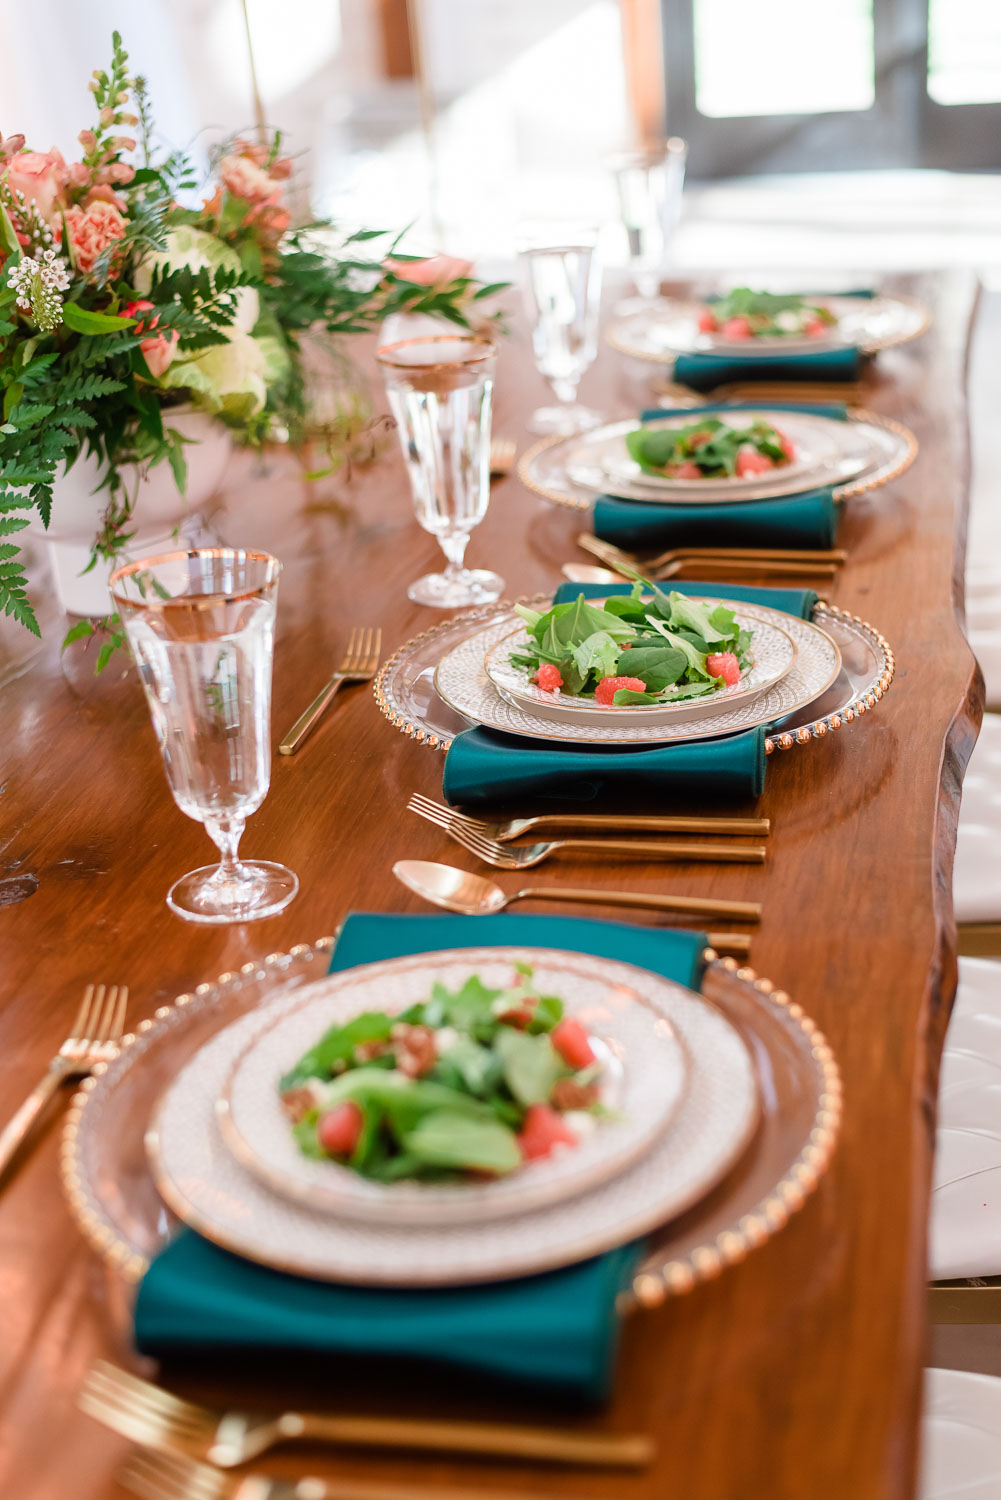 fresh baby spinach salad on plates from Chattanooga Tent on wooden farm table